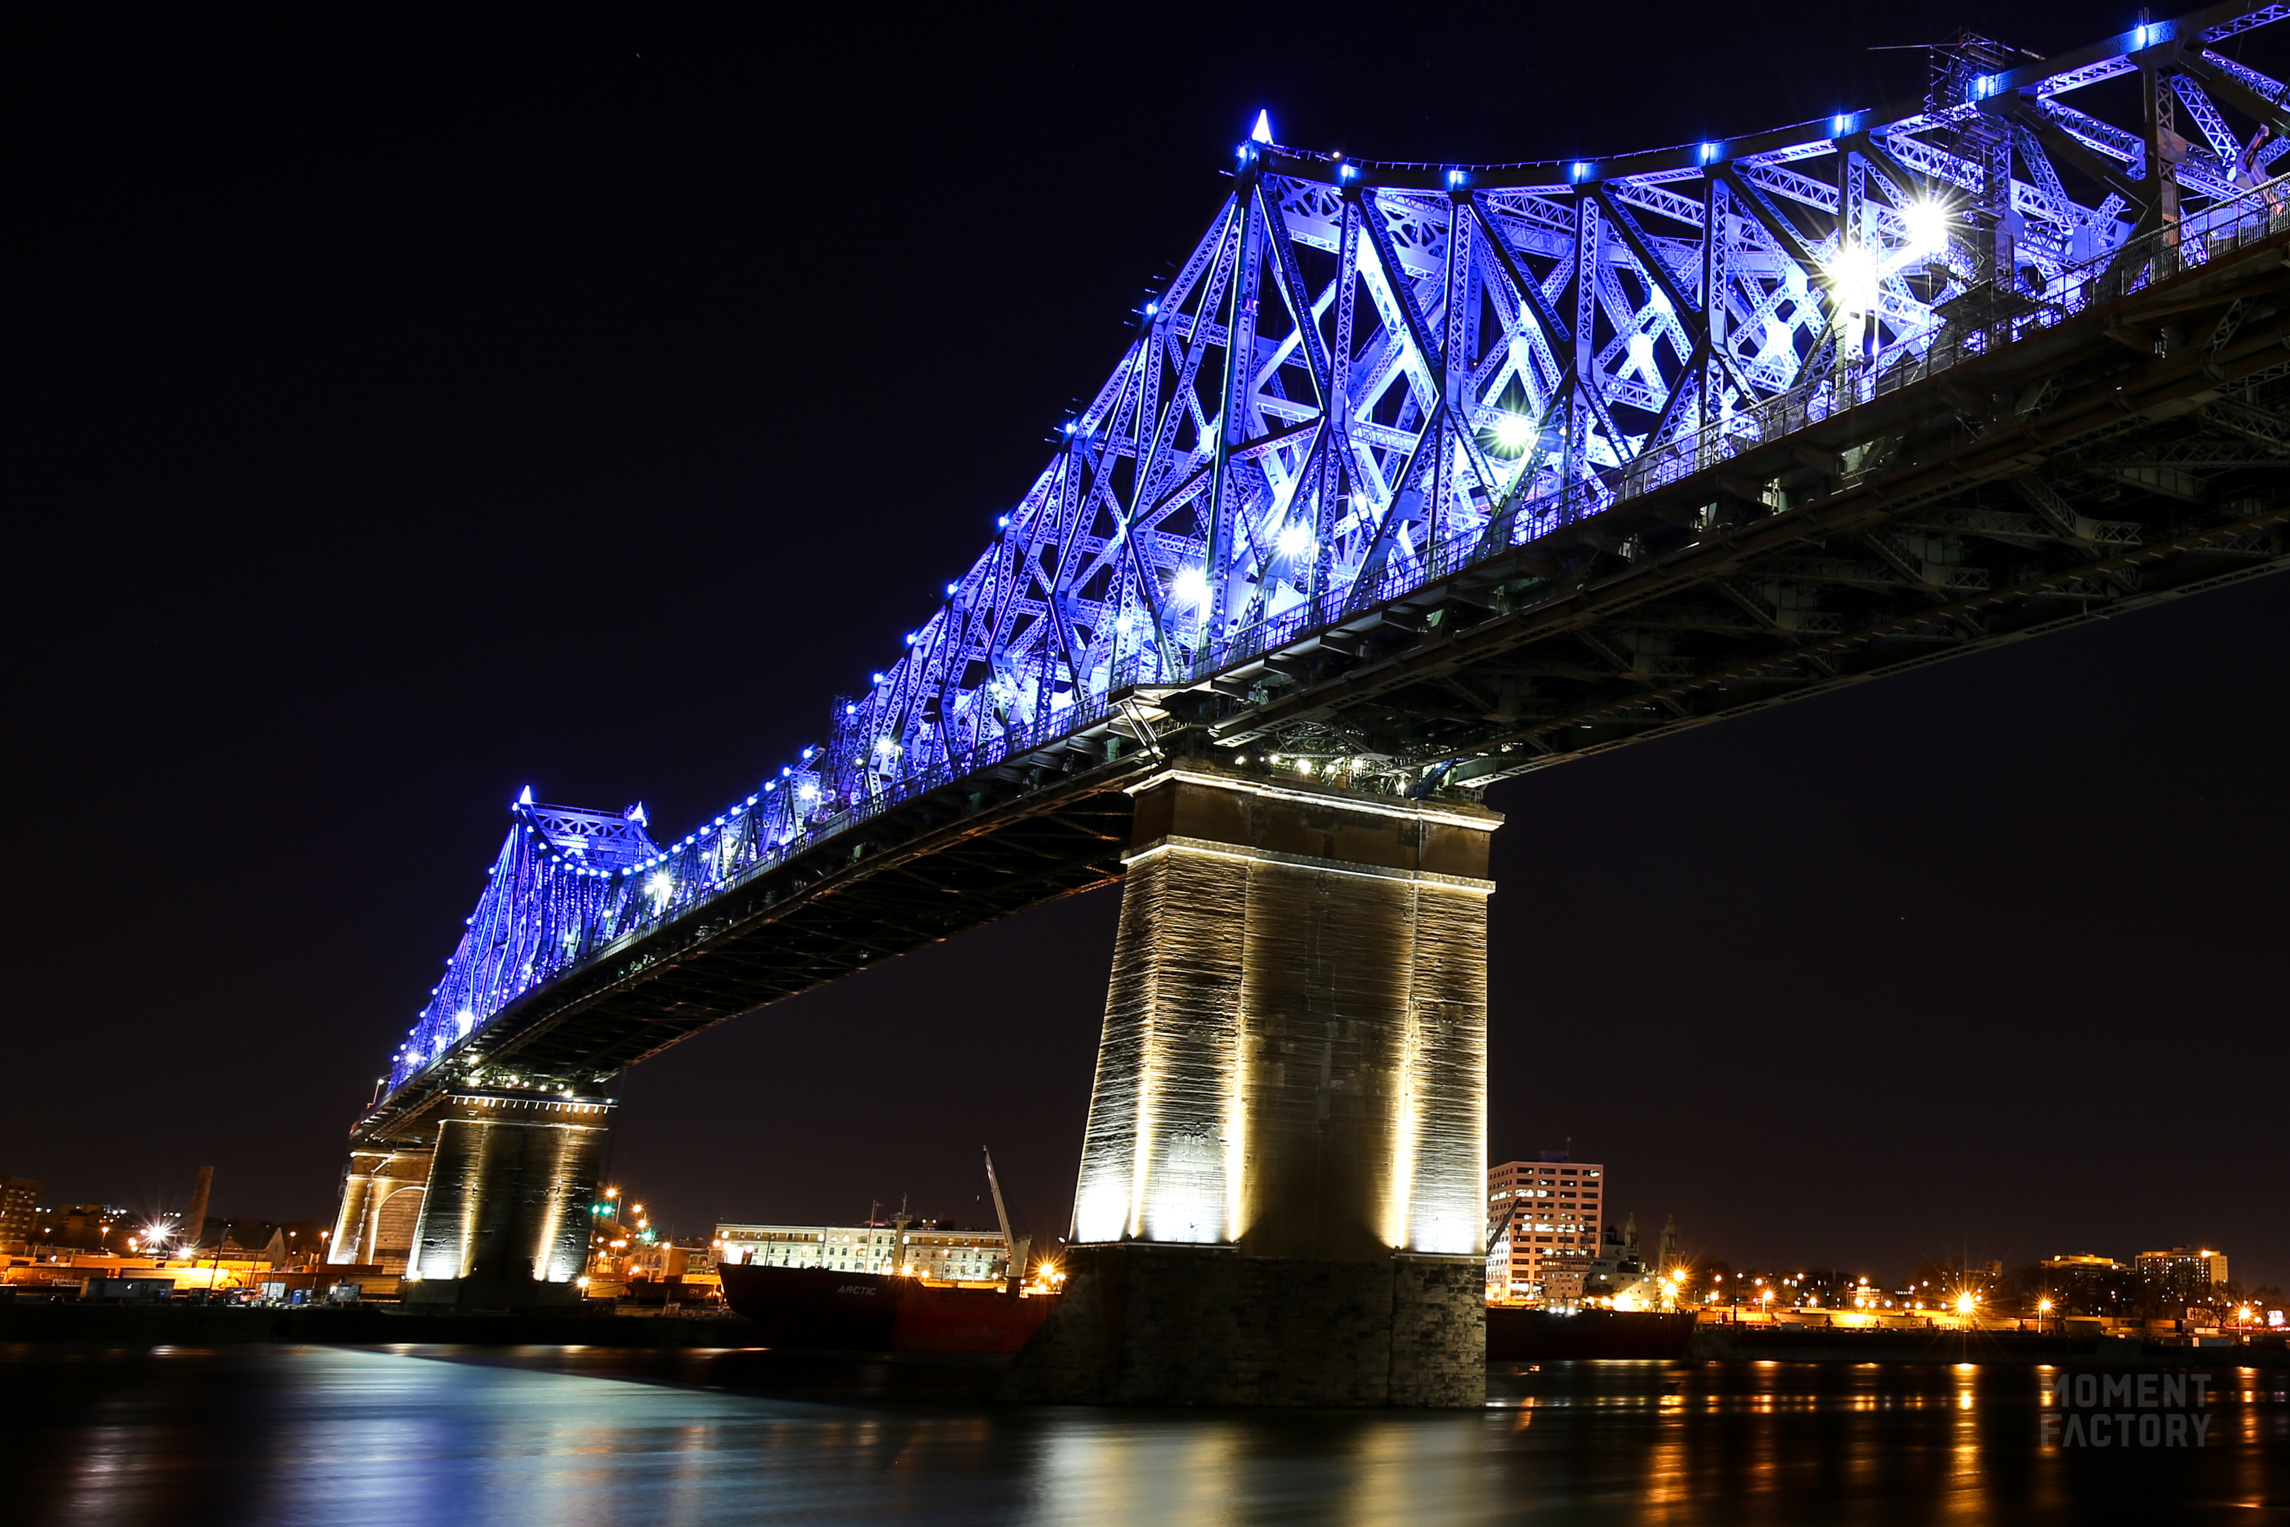 Lights Montreal Jacques Cartier Bridge Illumination Reflects The Vibrant